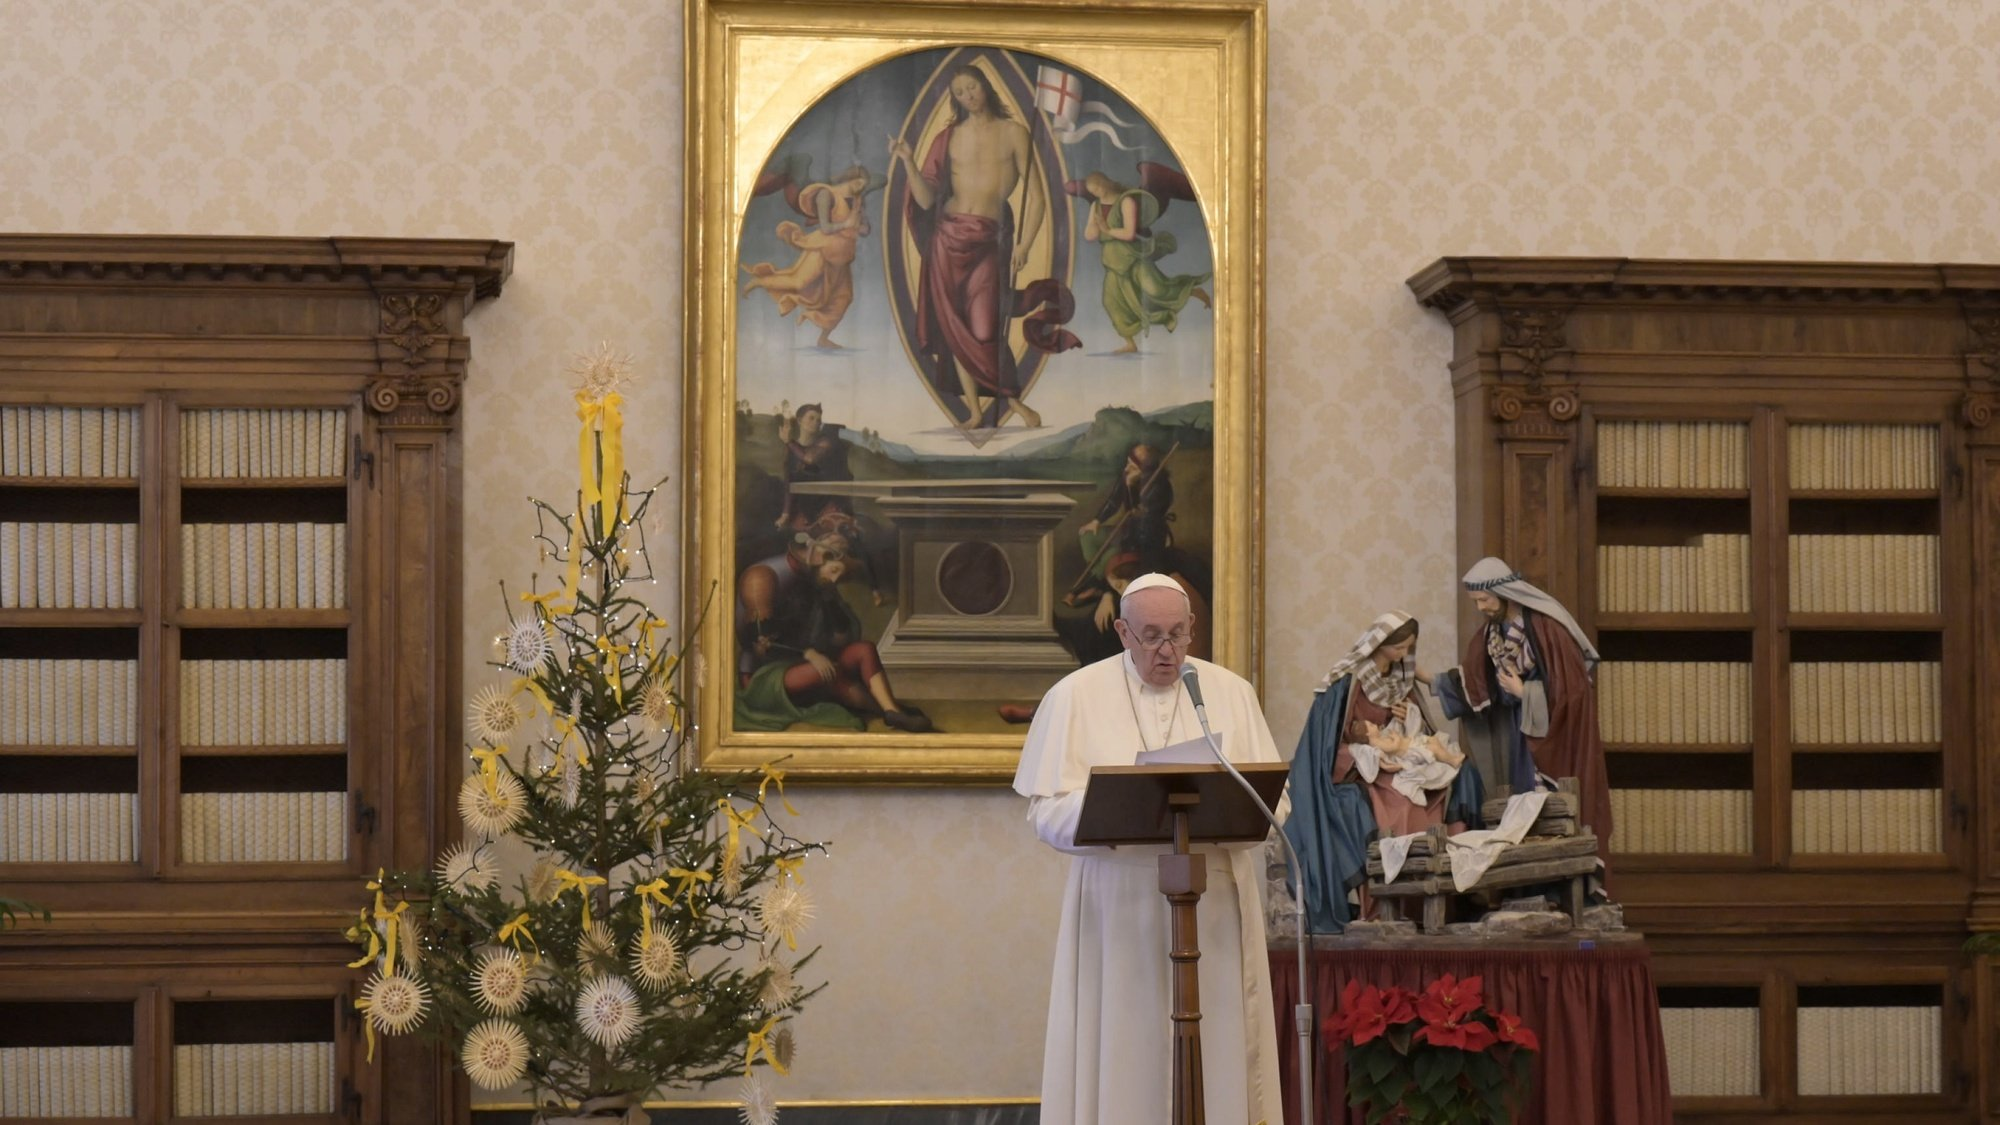 epa08914157 A handout picture provided by the Vatican Media shows Pope Francis delivering a live-streamed weekly Angelus prayer from the Library of the Apostolic Palace at the Vatican, 01 January 2021.  EPA/VATICAN MEDIA HANDOUT  HANDOUT EDITORIAL USE ONLY/NO SALES